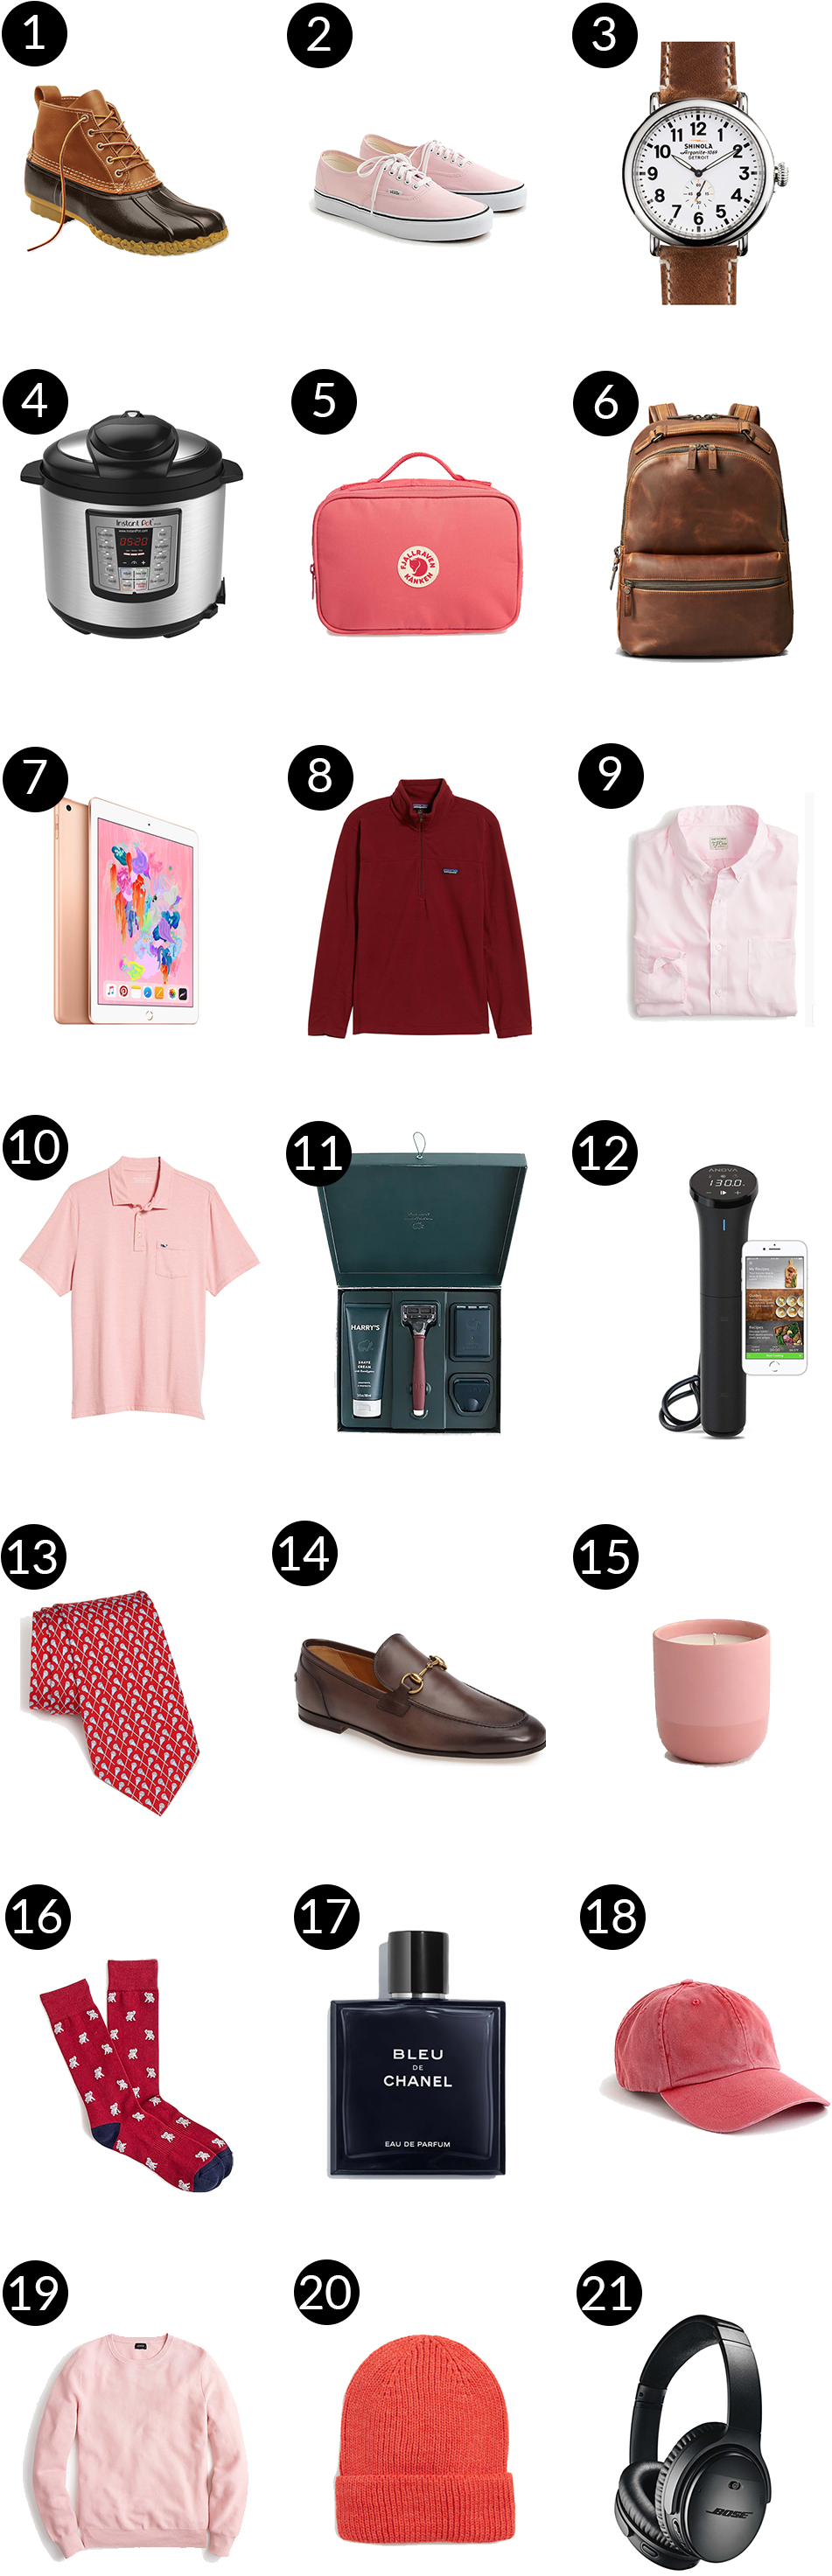 c530ed60 Mitch's Manly Valentine's Day Gift Guide - Kelly in the City